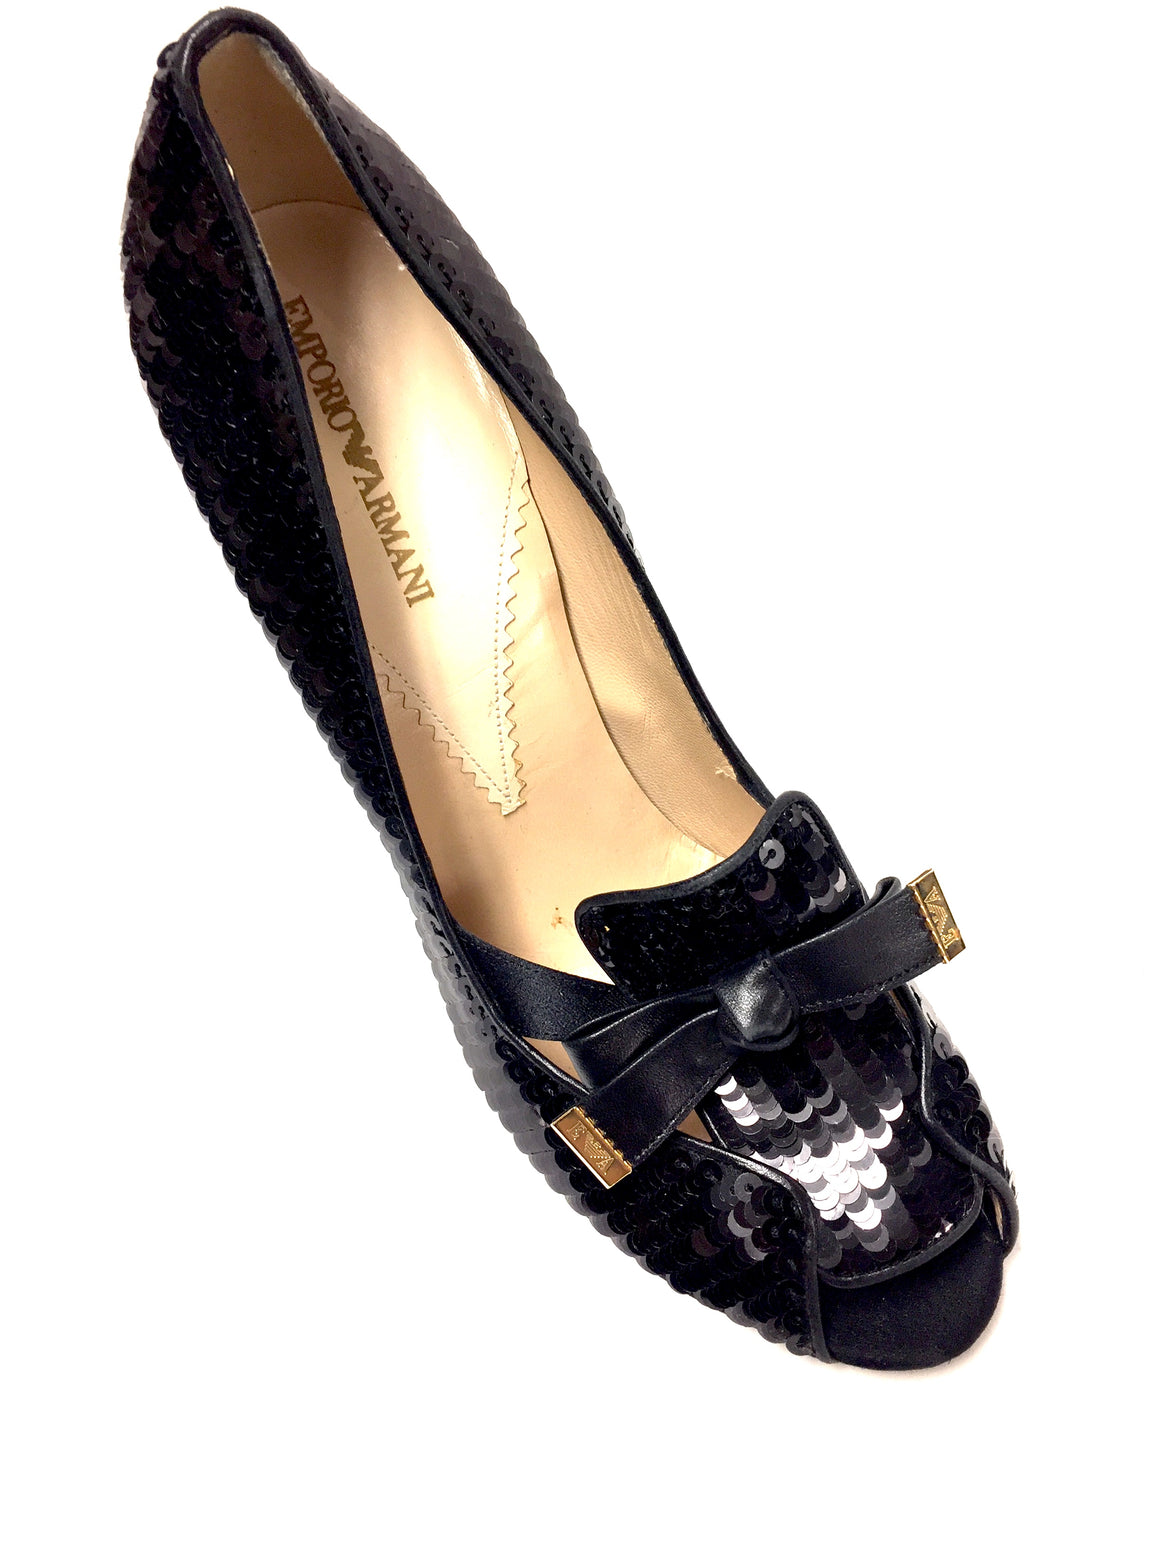 EMPORIO ARMANI Black Sequined Vamps Peep-Toe Party Heels Pumps Size: EU40 / US9.5